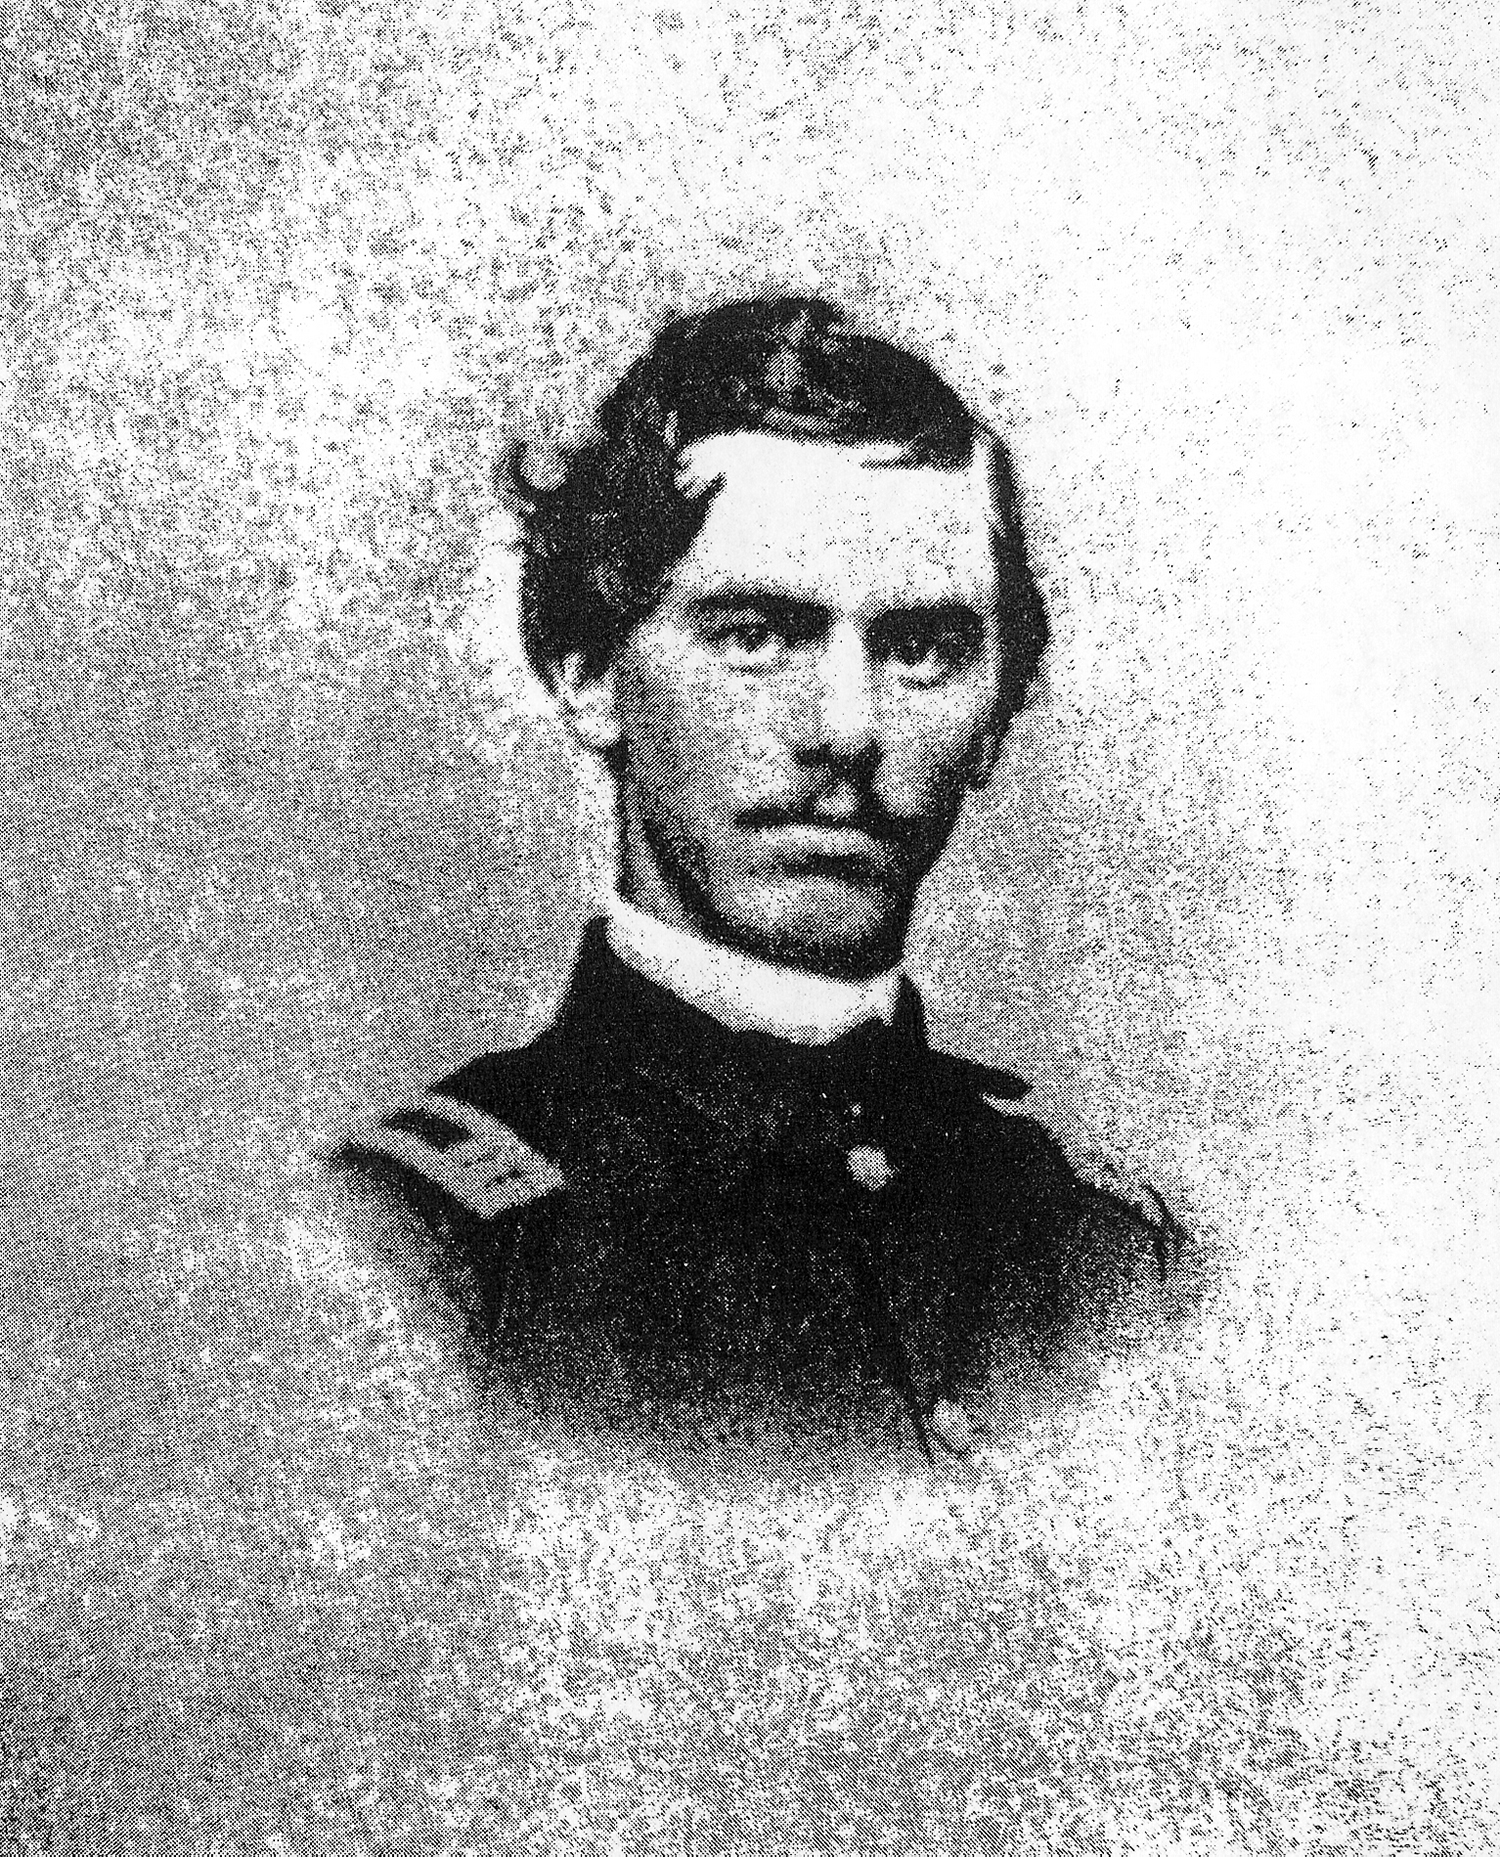 former cpl of the 3rd Michigan was serving as Major of the 6th Michigan cavalry when he was killed at Falling Waters, MD, on July 14, 1863; source: USAMHI